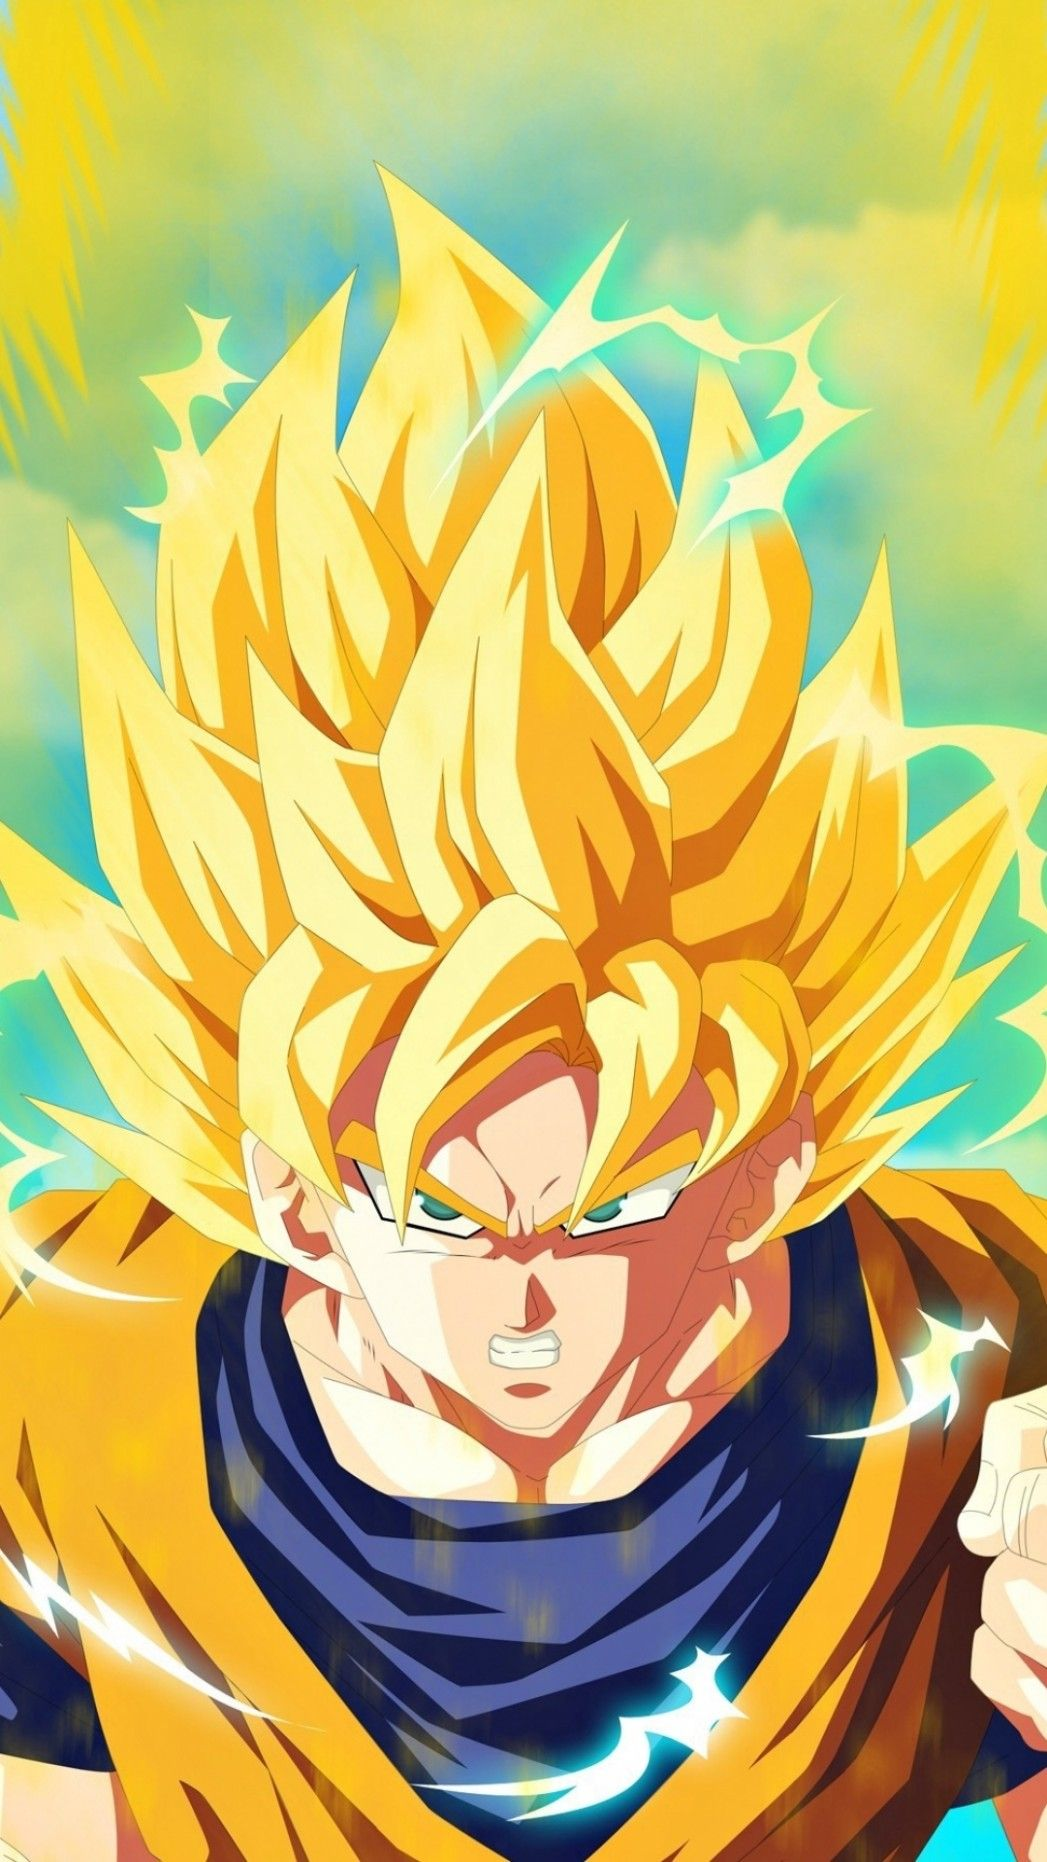 Iphone live wallpaper dragon ball